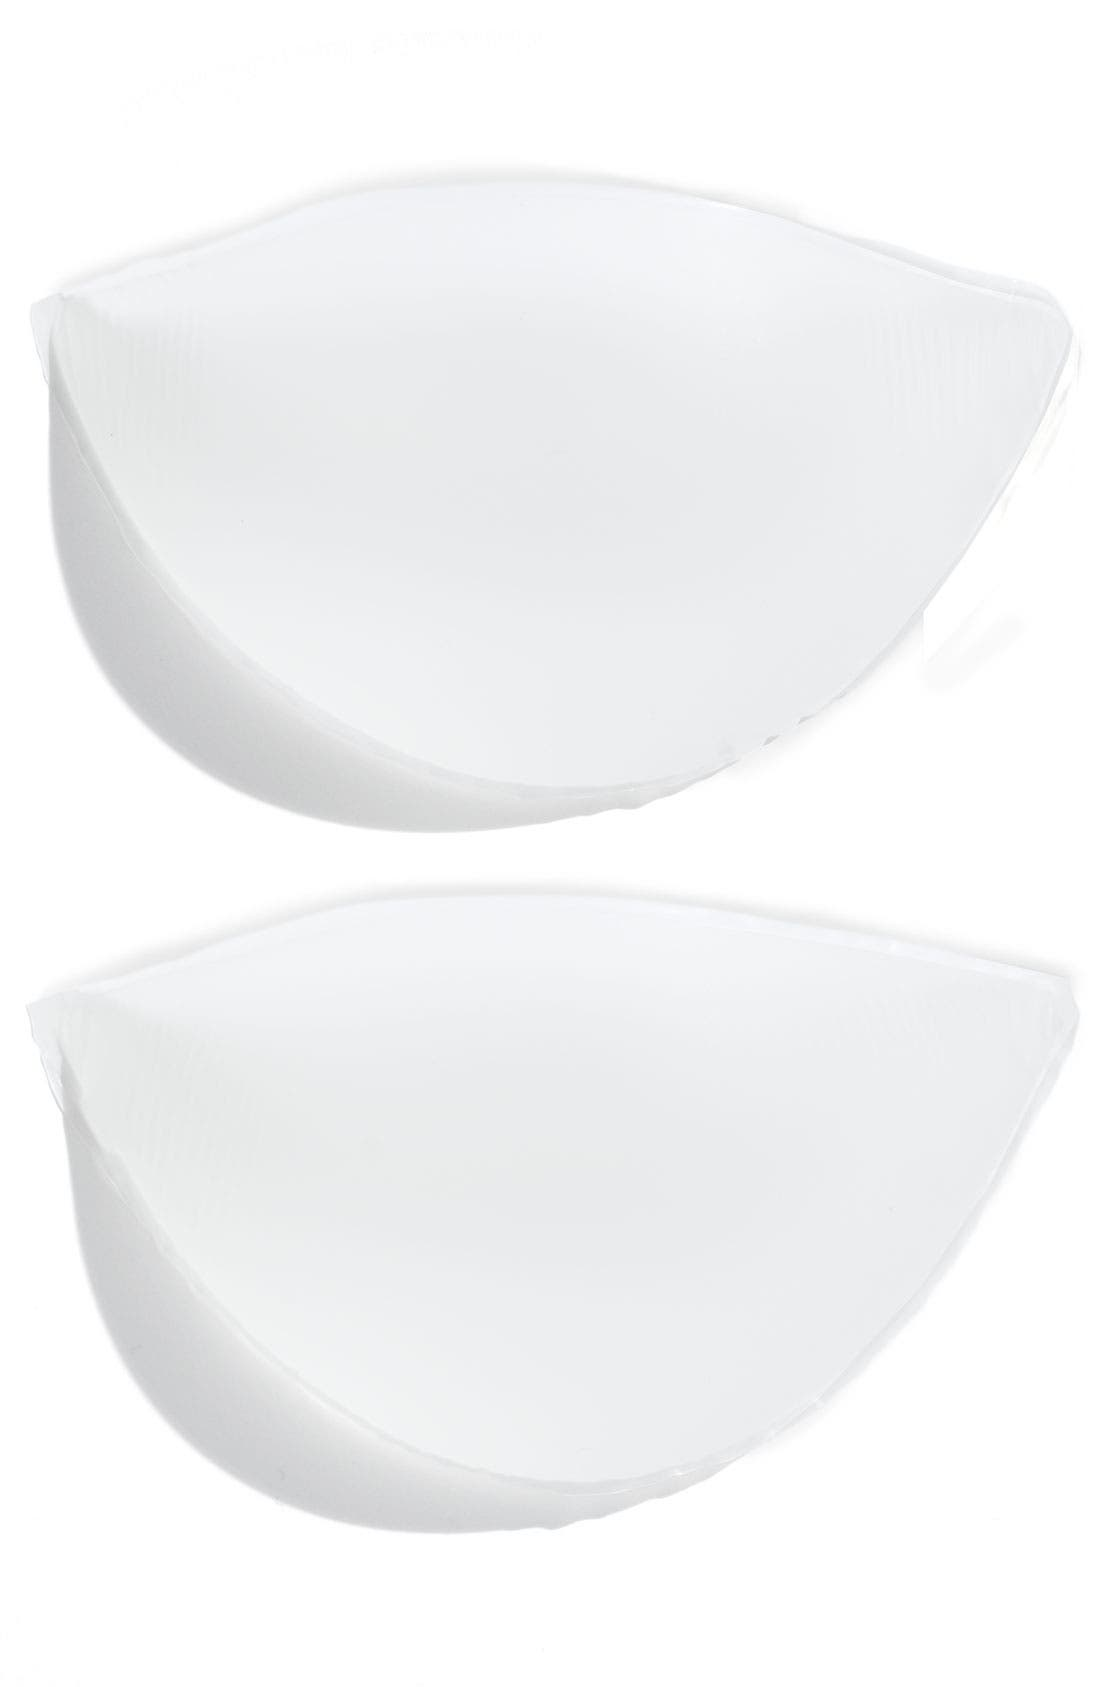 Nordstrom Lingerie 'NO84787' Push-Up Gel Pads